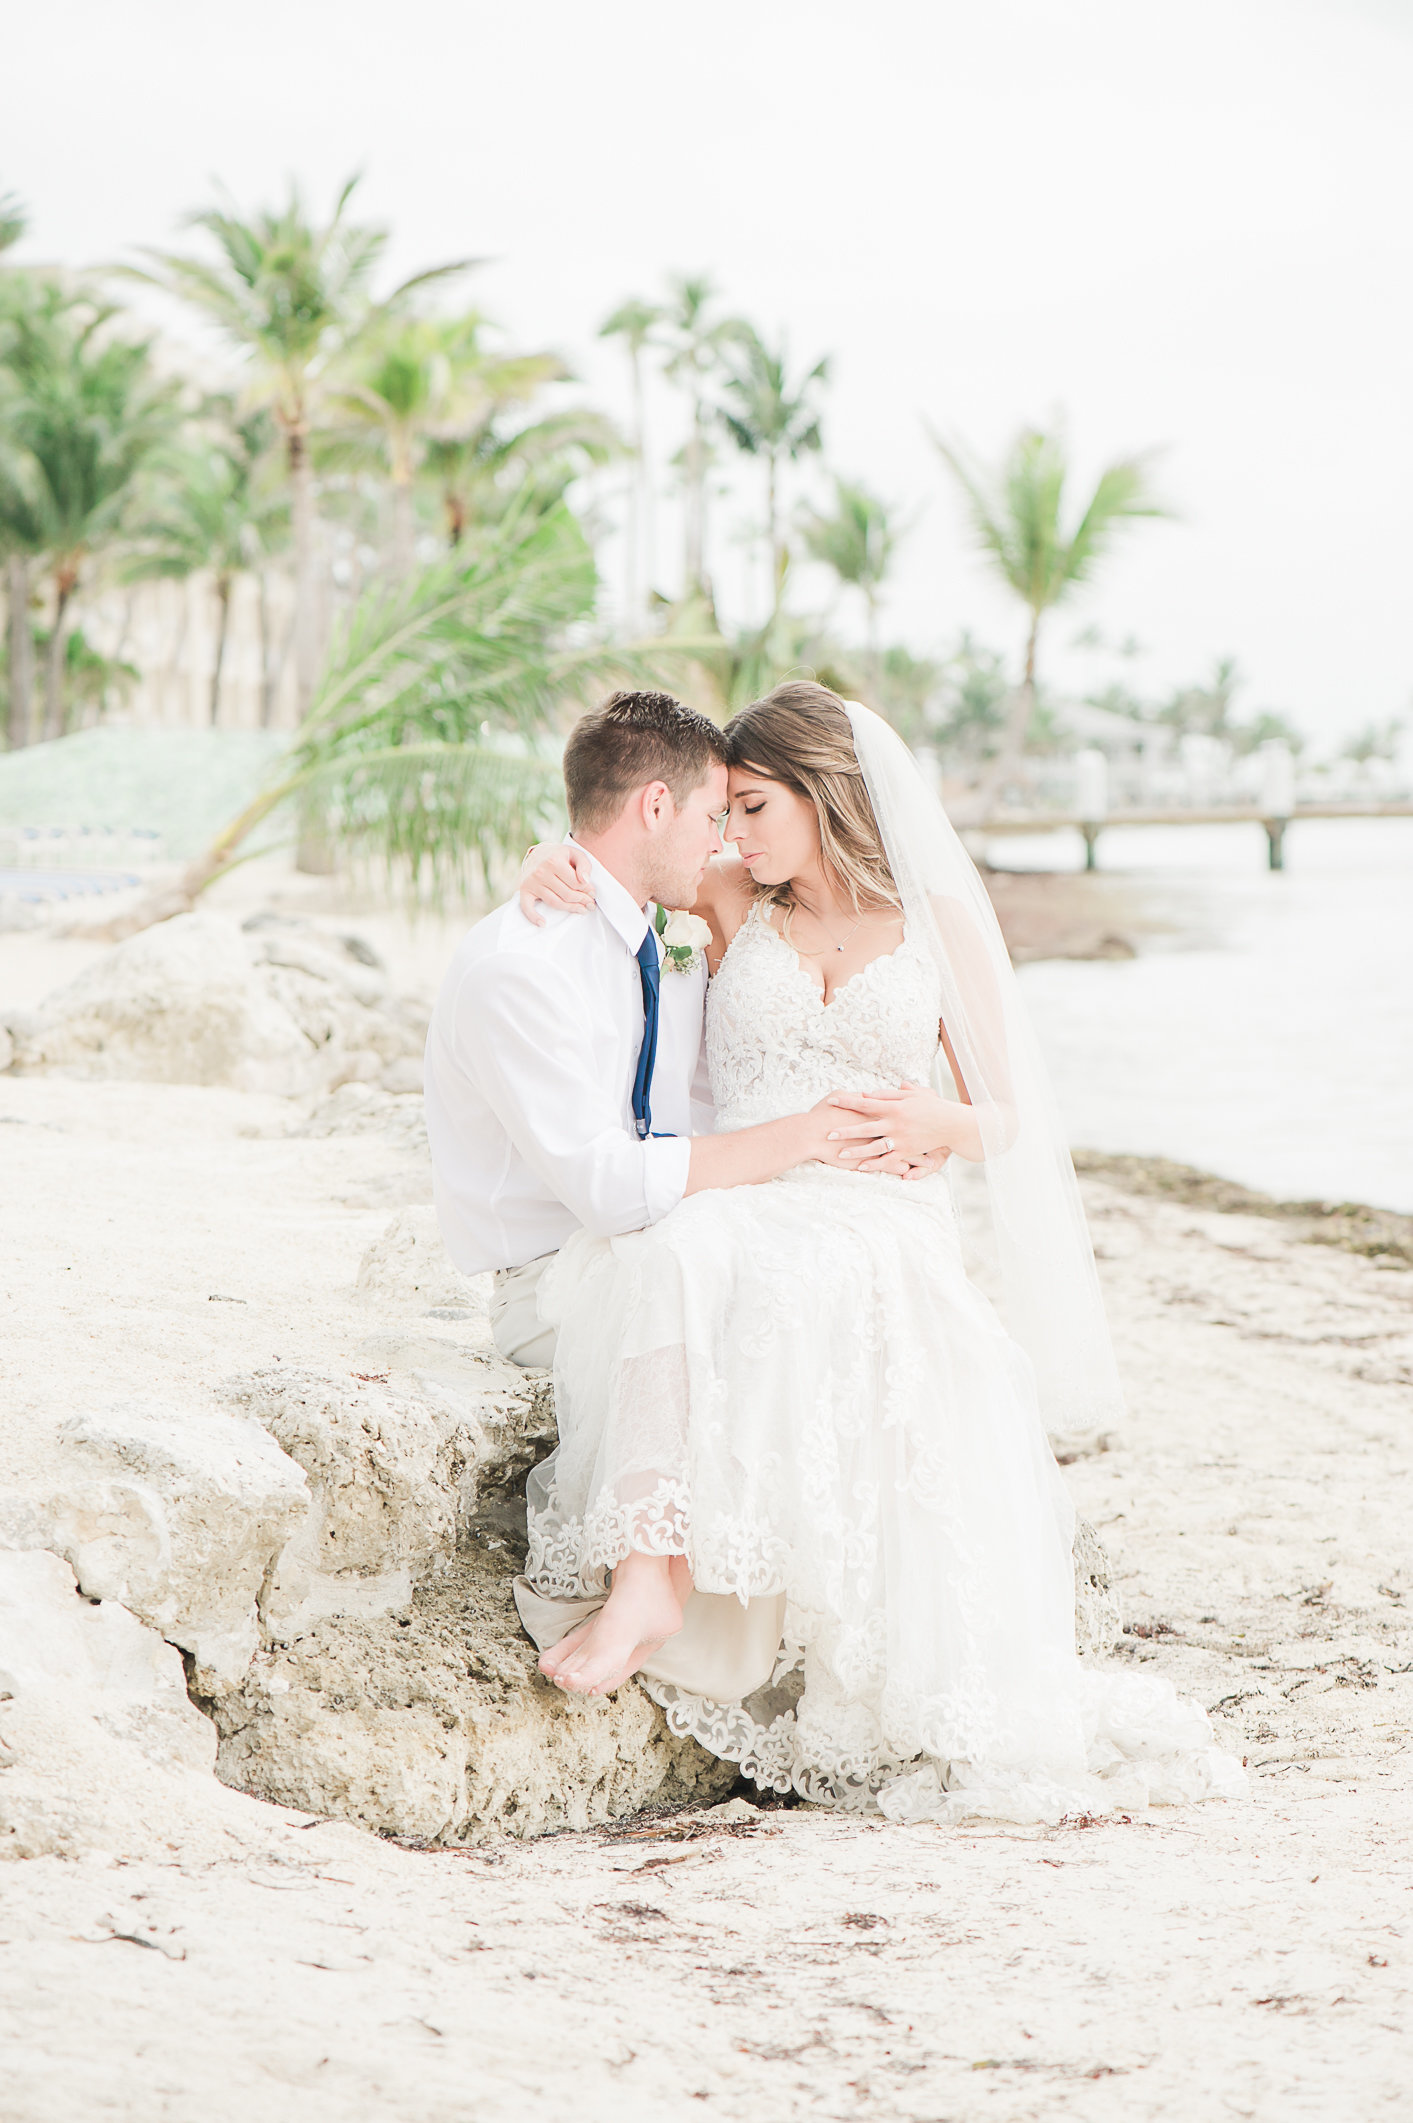 Bride and Groom at Cheeca Wedding - Palm Beach Wedding Photography by Palm Beach Photography, Inc.